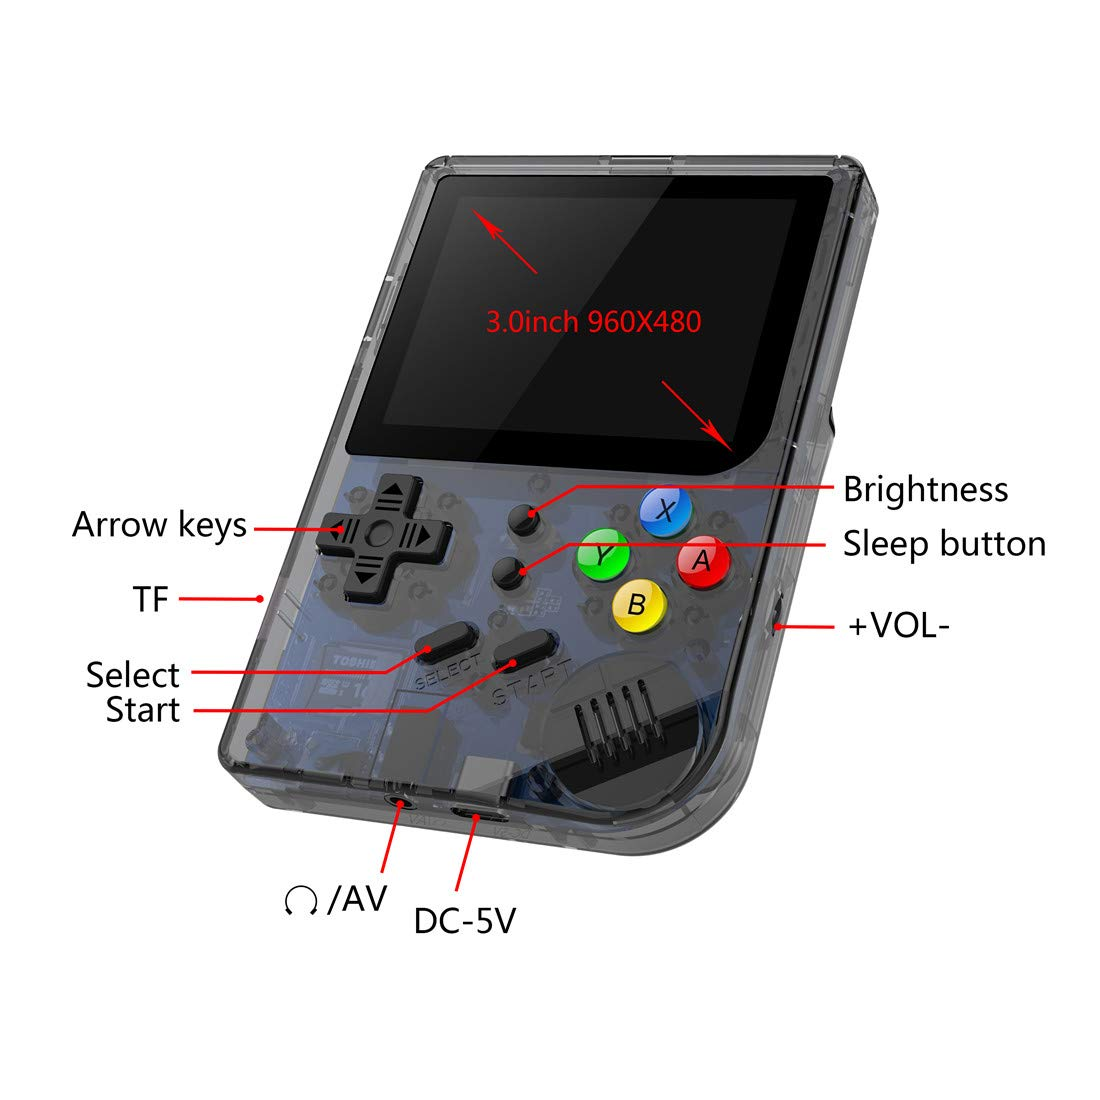 3 INCH Video Games Portable Retro FC Console New BittBoy Retro Game Handheld Games Console Player RG 300 16G 3000 Games Best Gift (Black) by Neutral (Image #3)